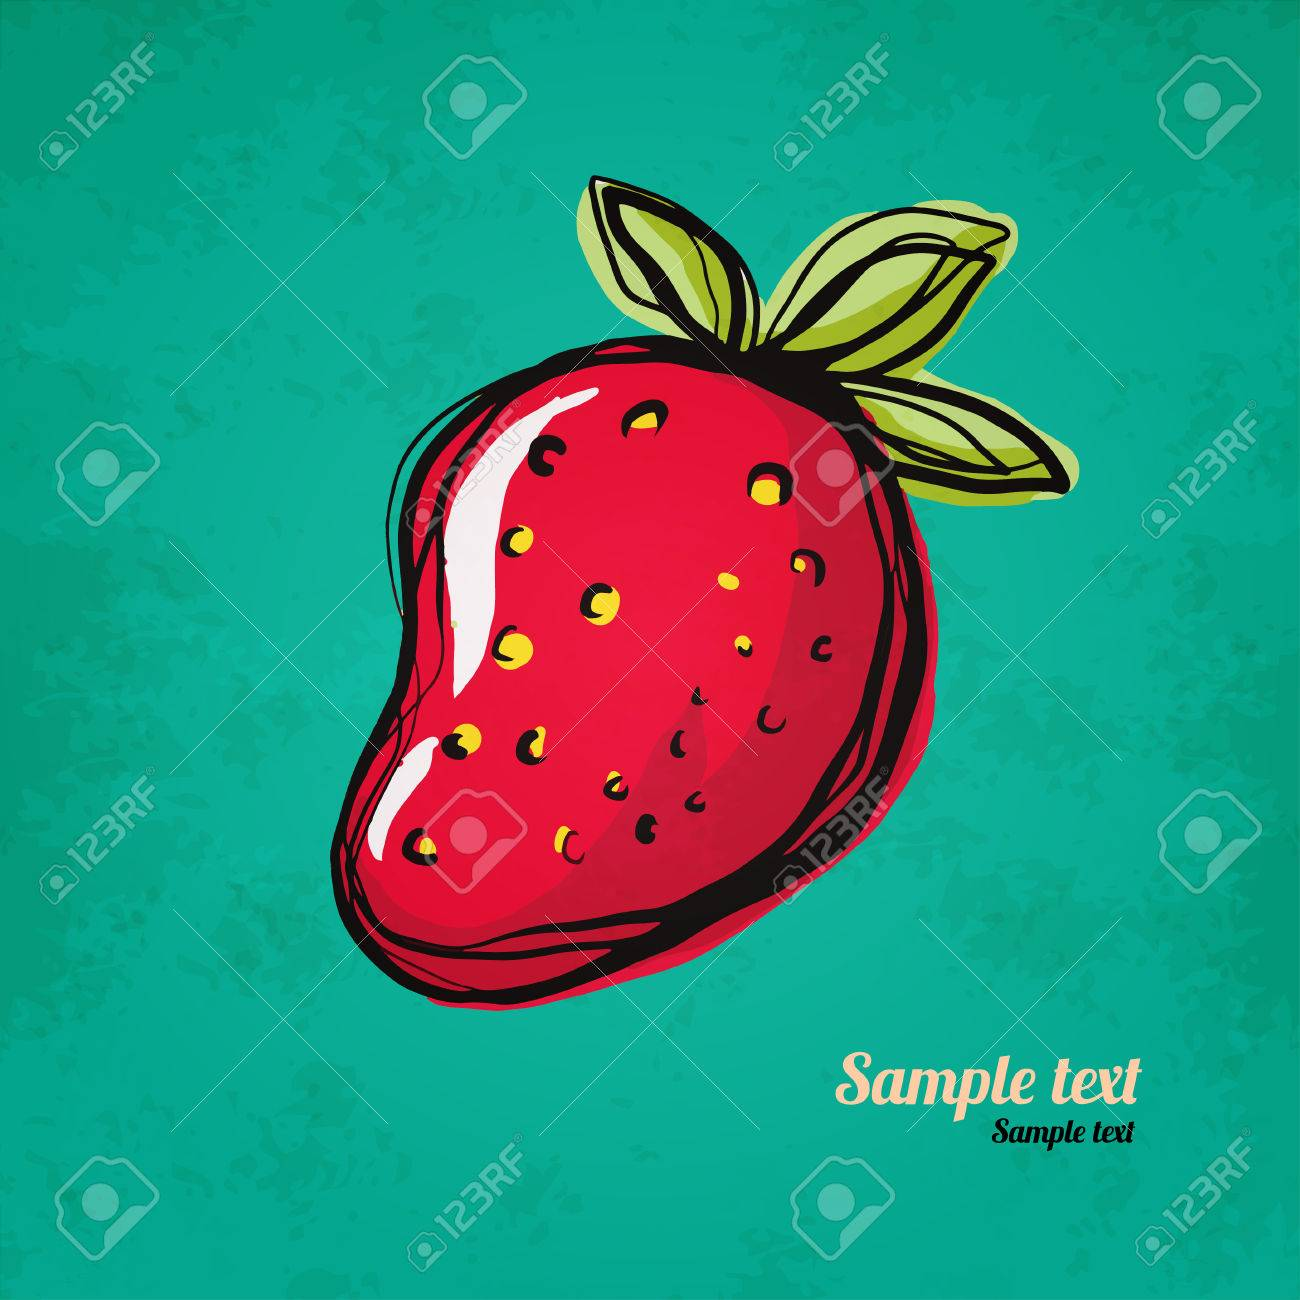 Strawberry Isolated Simple Sketch Icon On Grunge Paper Texture Royalty Free Cliparts Vectors And Stock Illustration Image 24013015